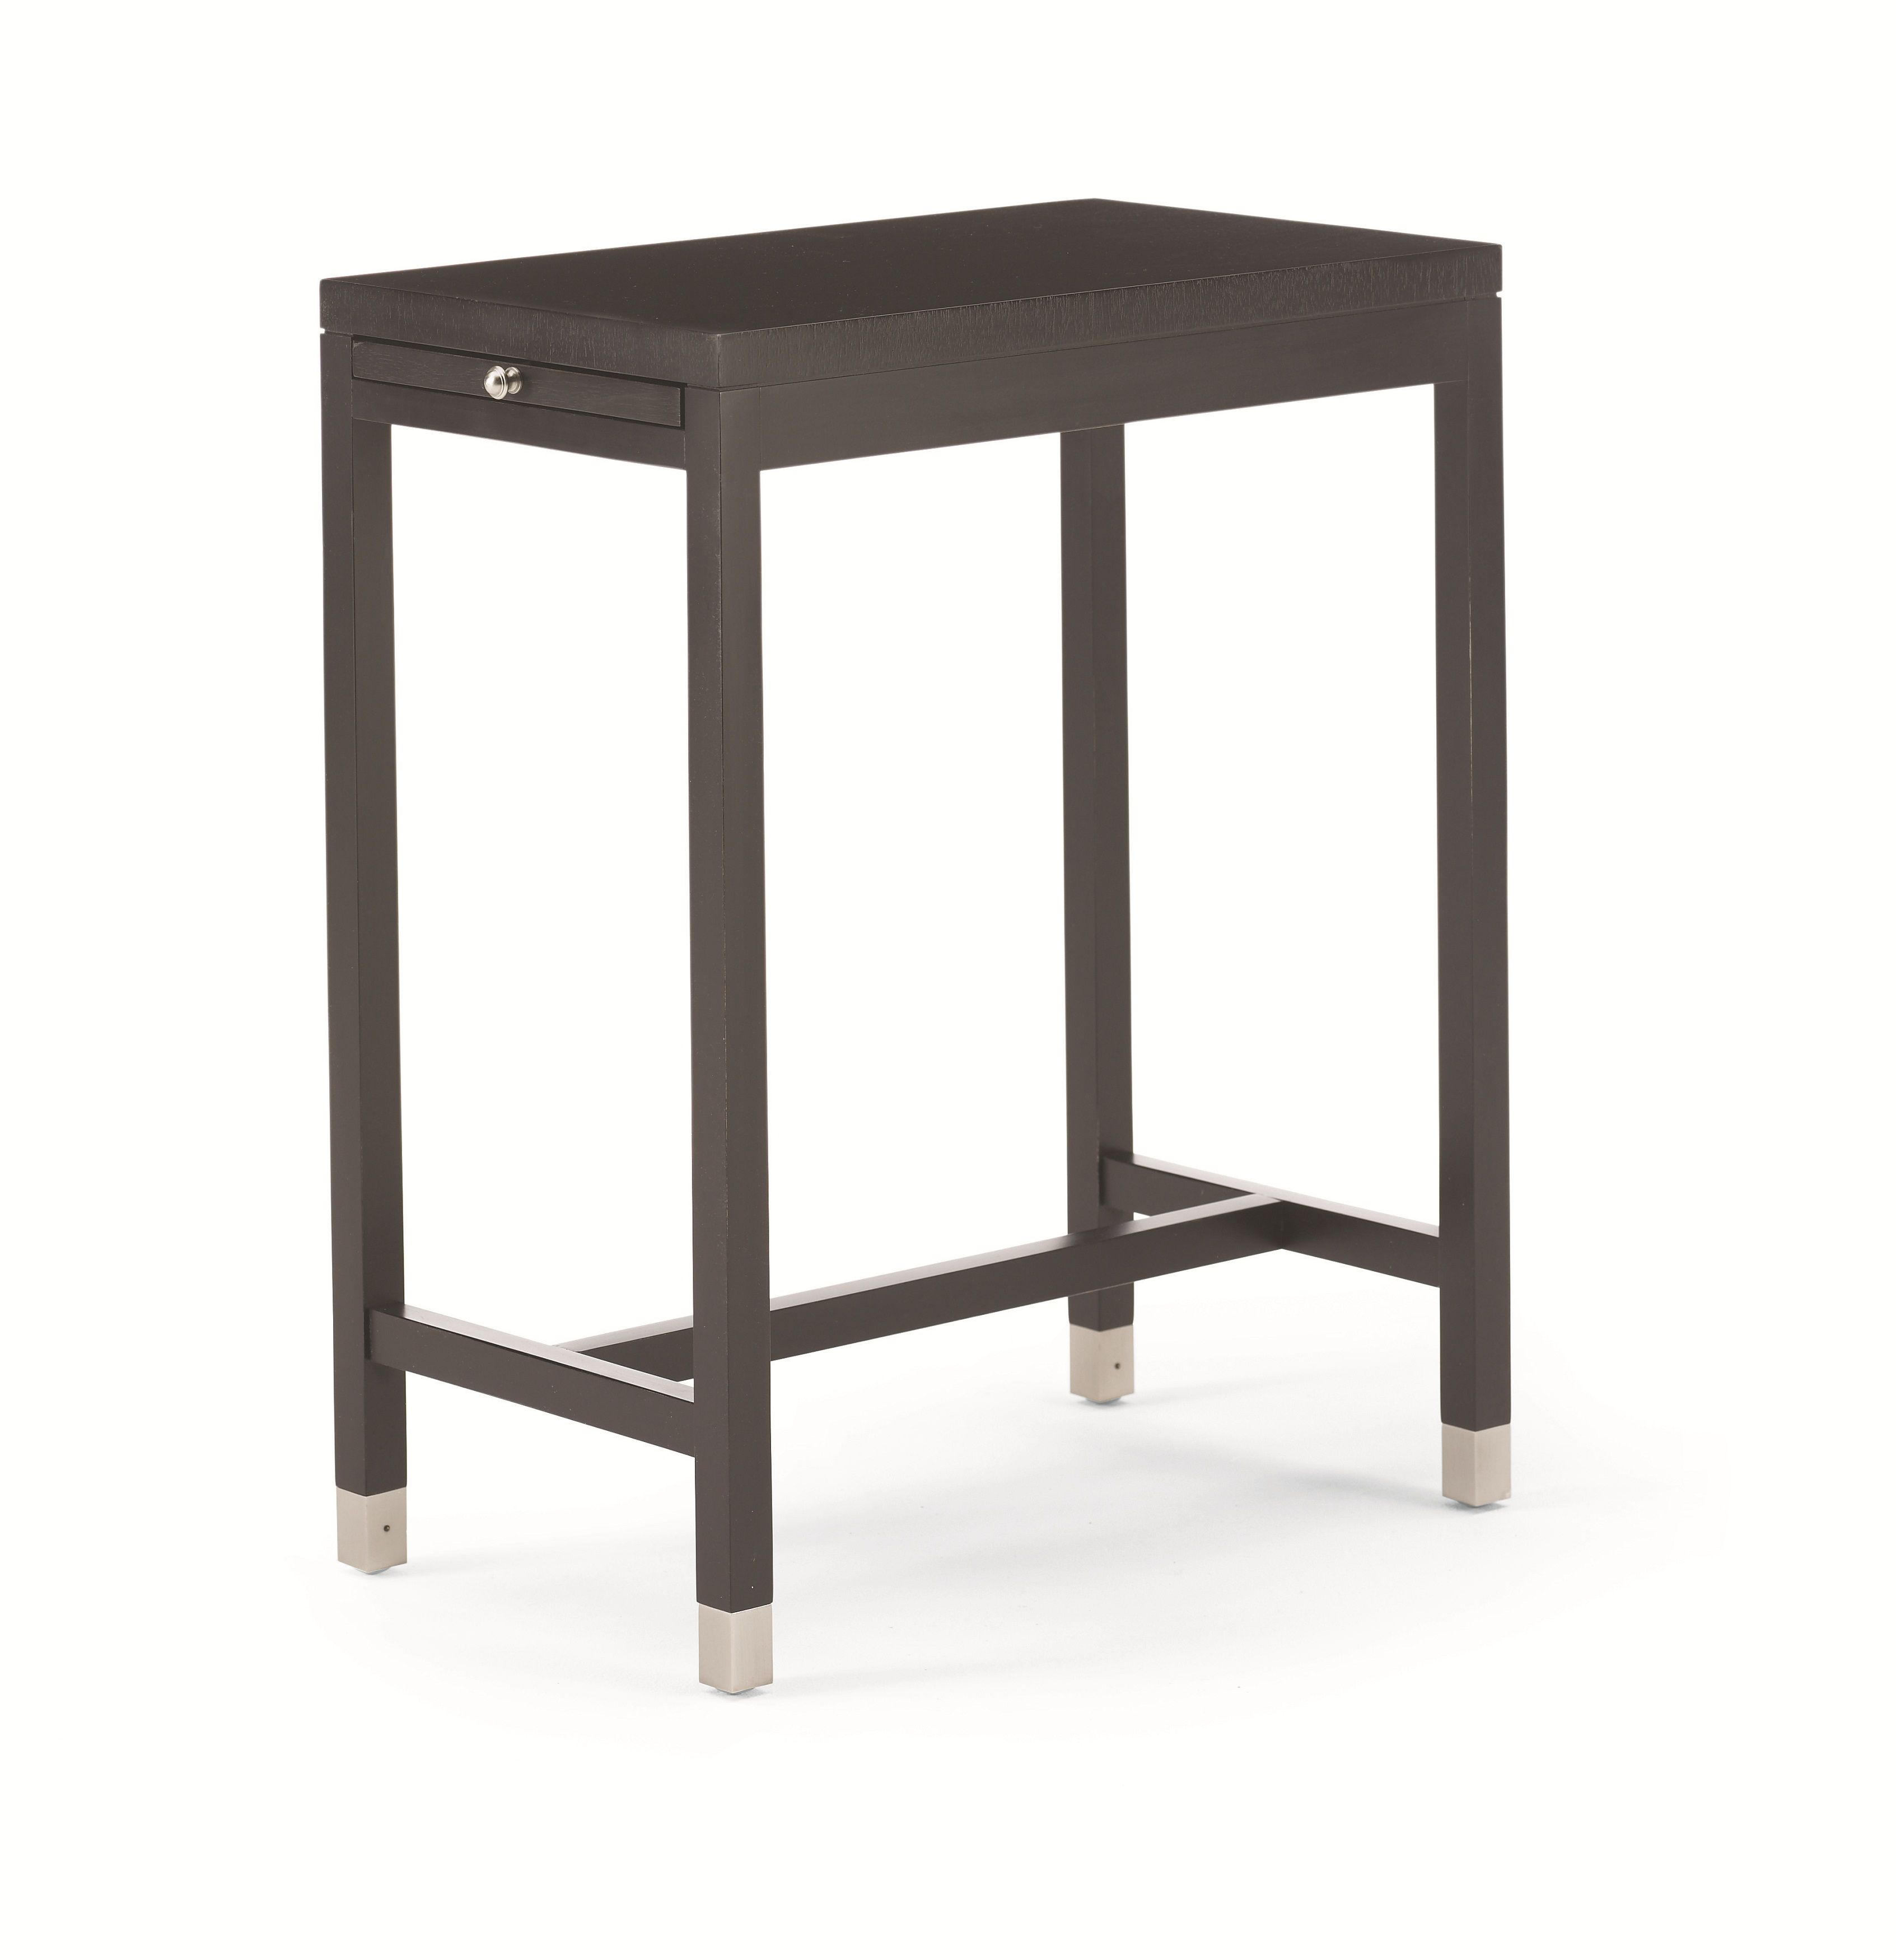 Hickory White Side Table 65321 Hickory white, Walnut